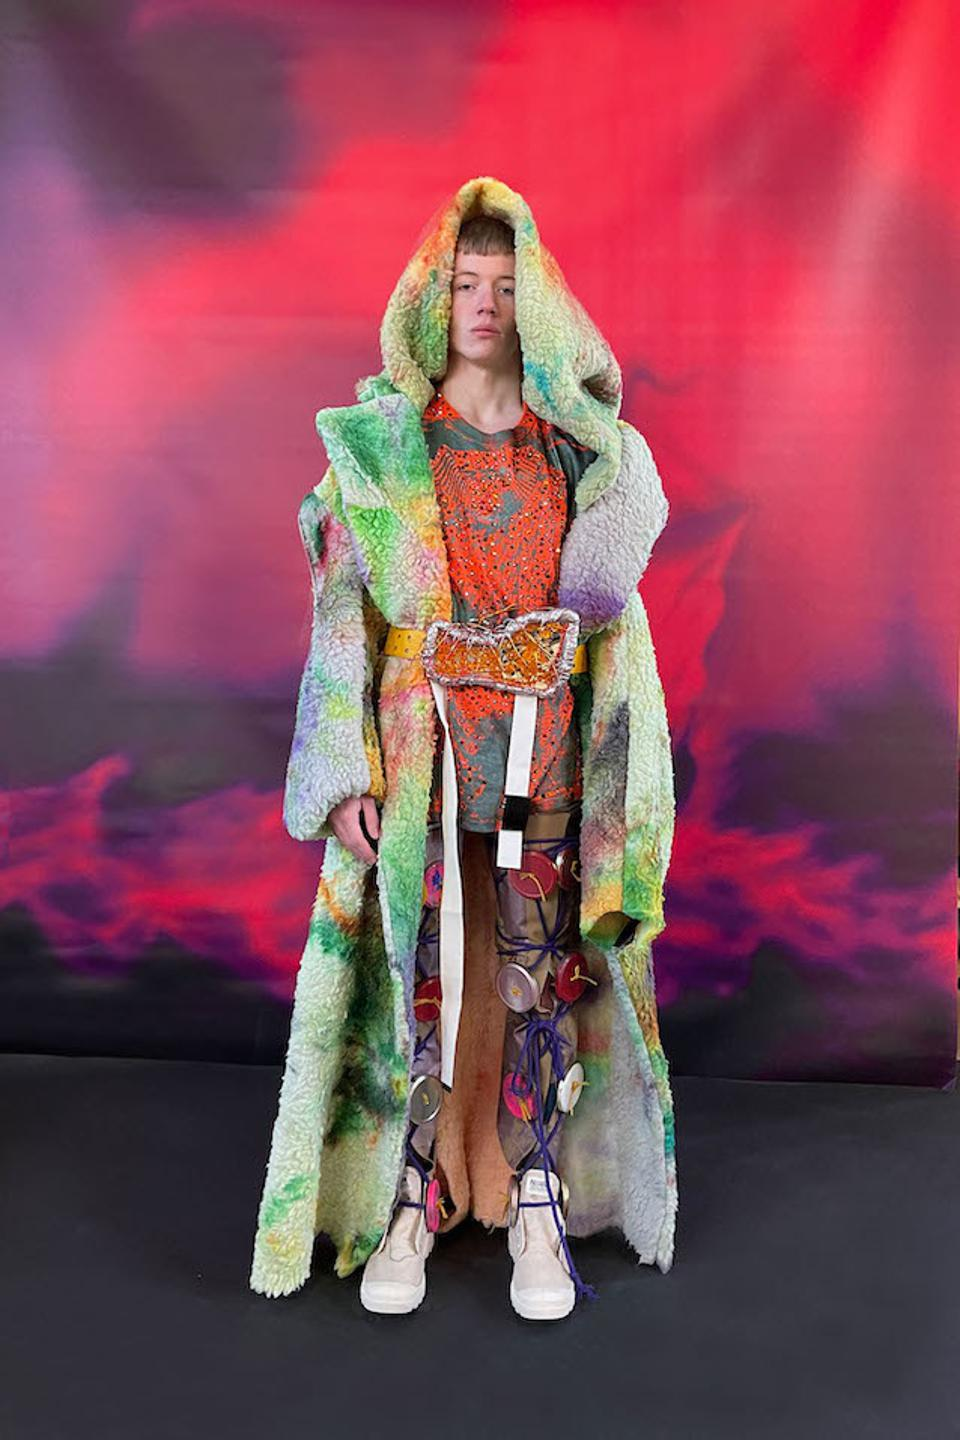 Matty Bovan Autumn/Winter 2021; Look 22 from this collection formed part of his International Woolmark Prize submission